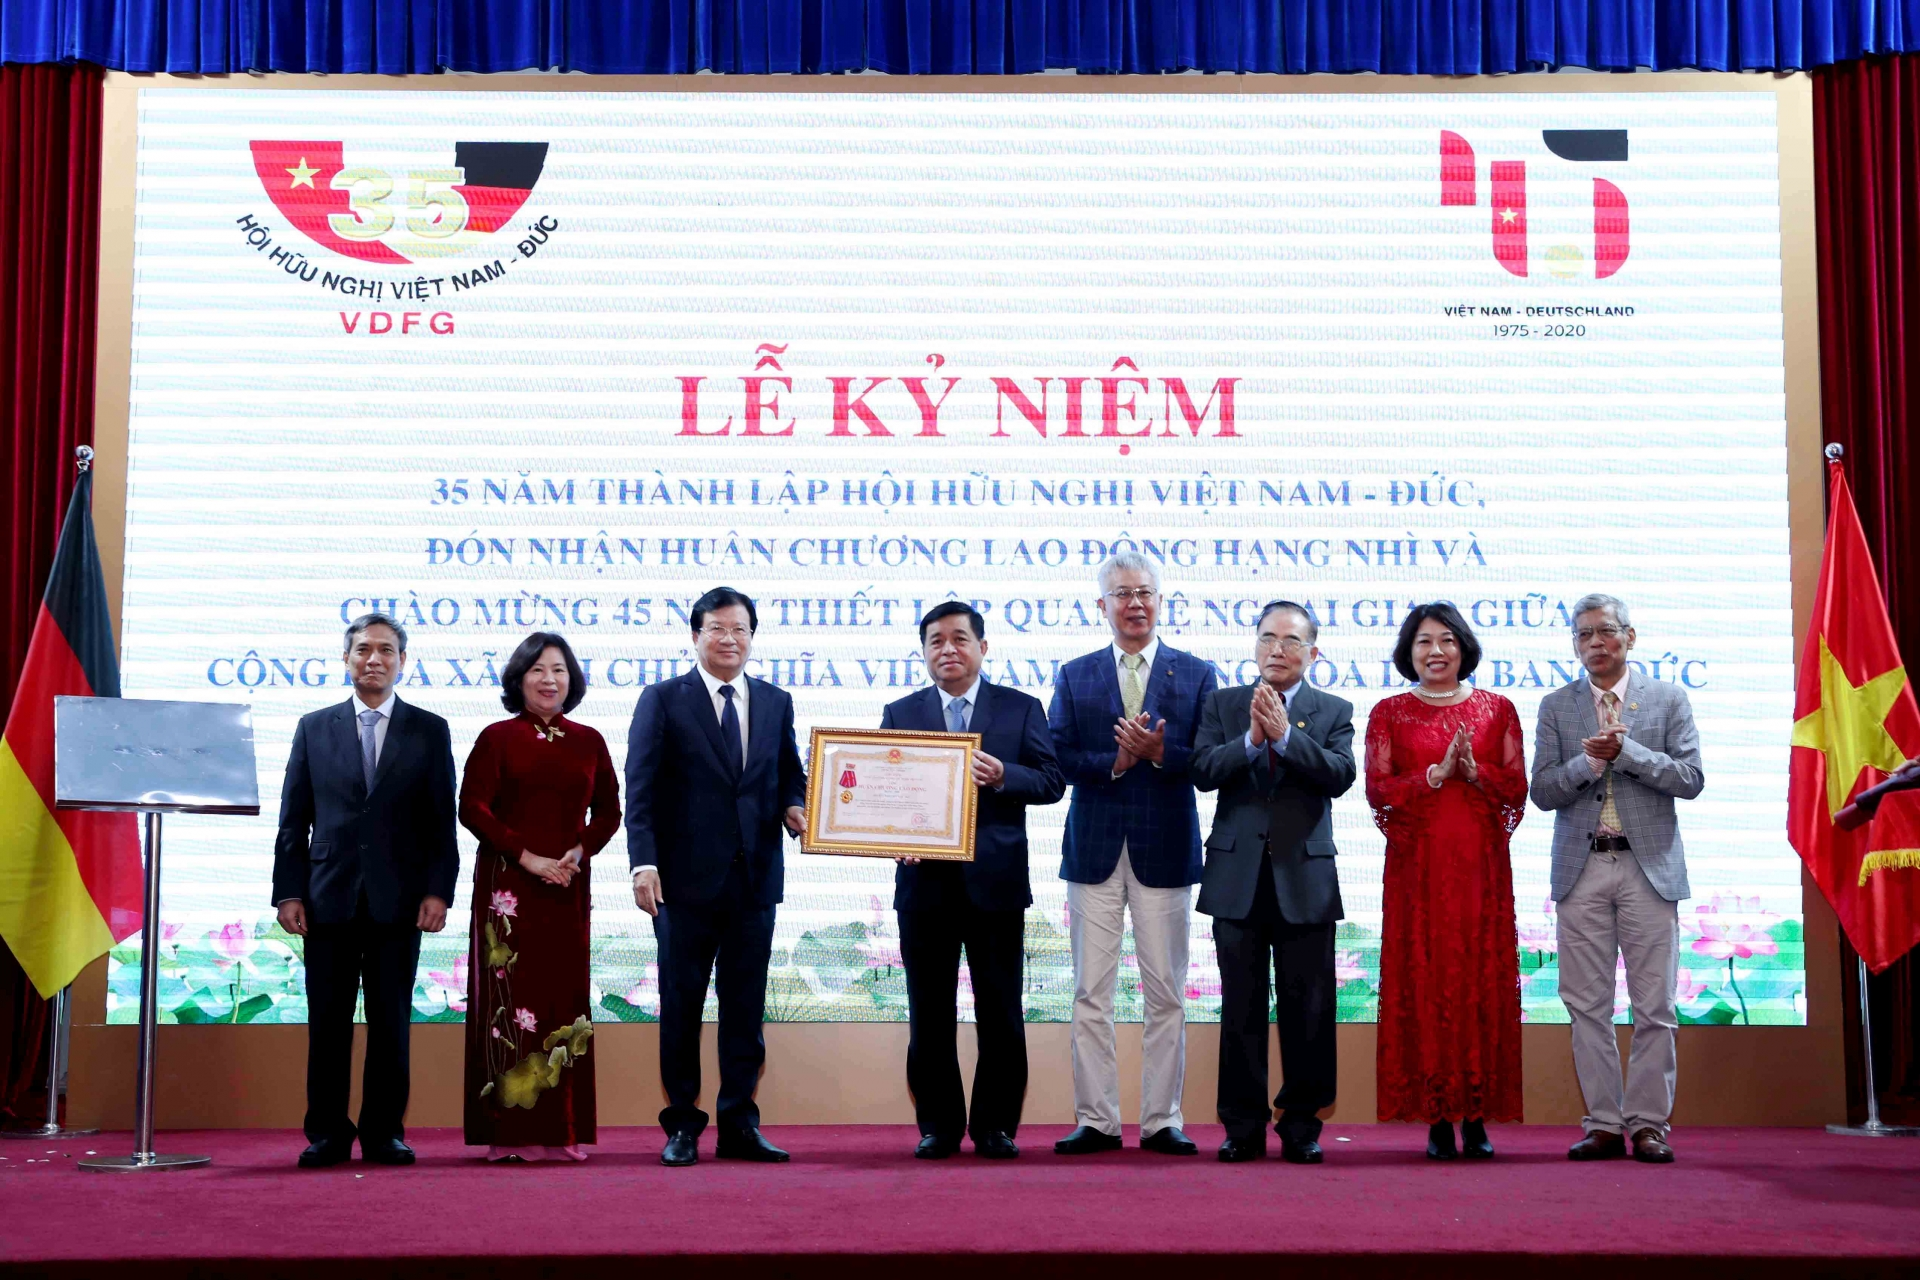 Vietnam and Germany pop champaign on 45 years of cooperation